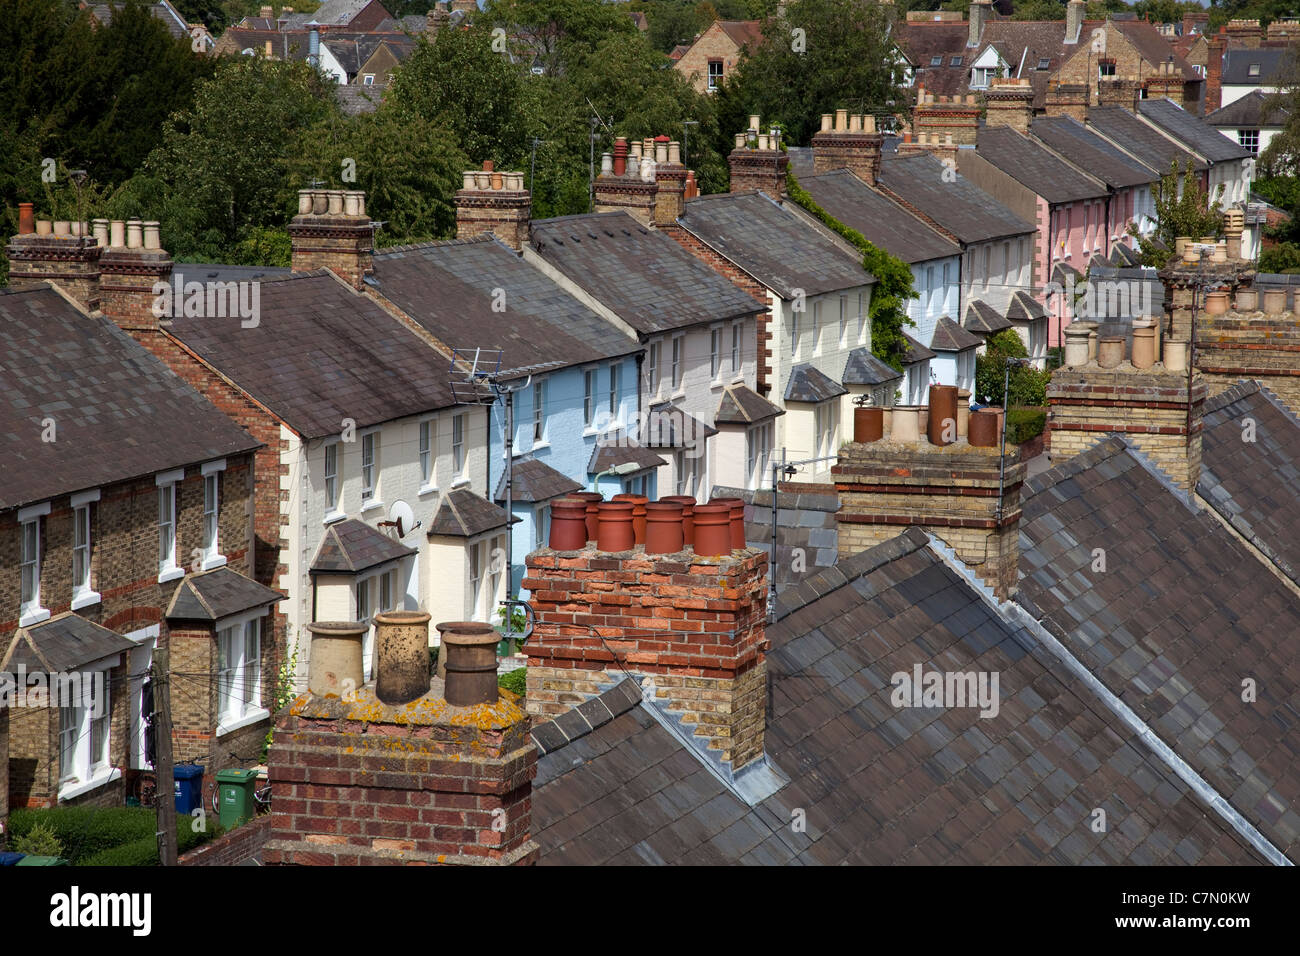 Residential Terraced Housing in Oxford City street, England - Stock Image